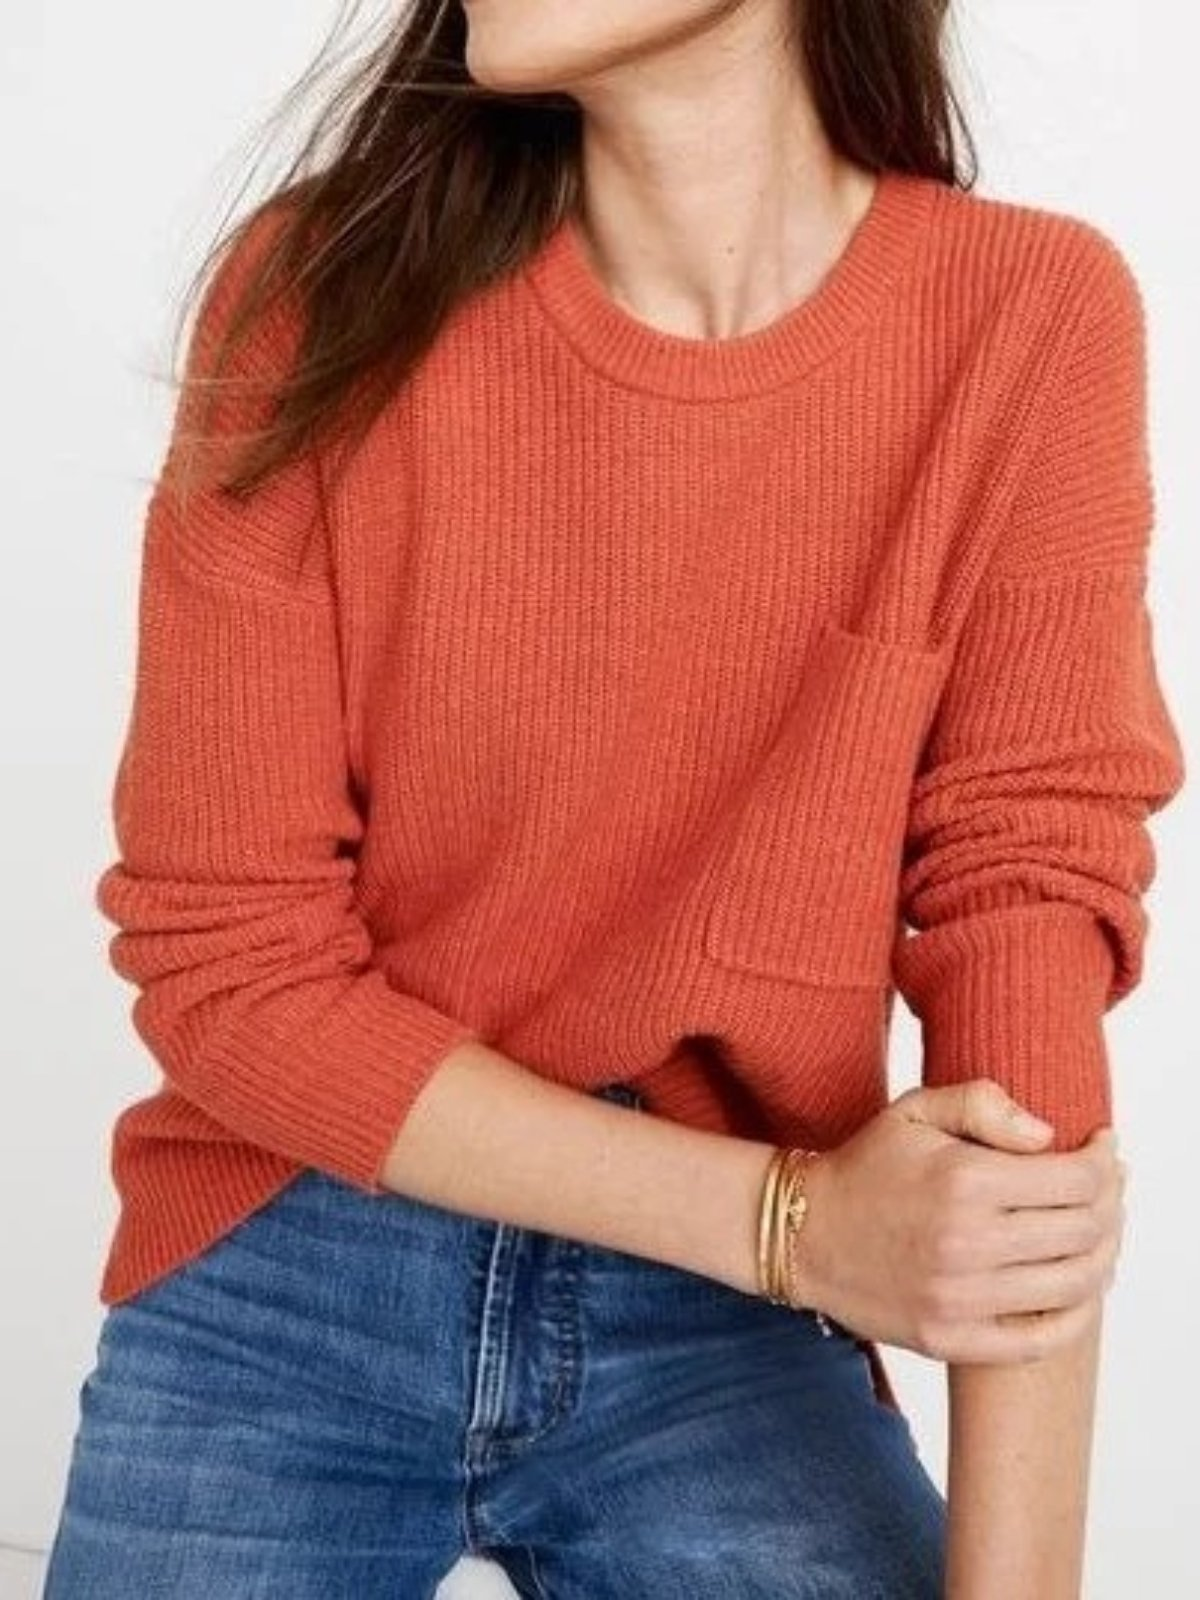 Light Orange Long Sleeve Knitted Round Neck Casual Shirts & Tops